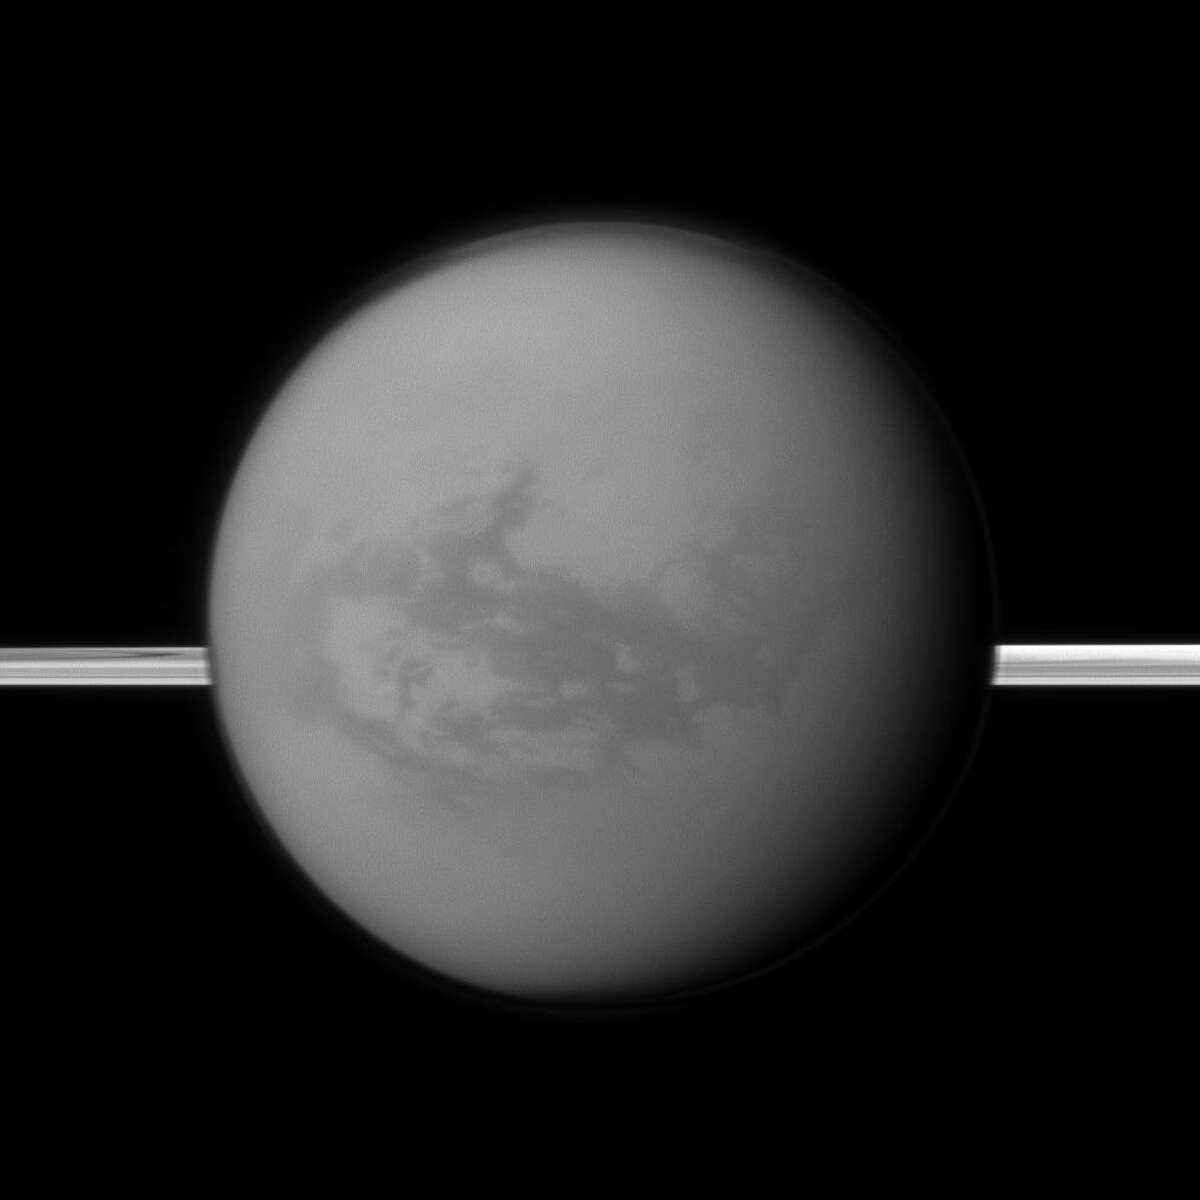 This image shows Titan with Saturn's rings in the background. Titan holds liquid, has clouds and experiences rain. But unlike Earth, Titan's bodies of liquid contain methane, not water, according to NASA.